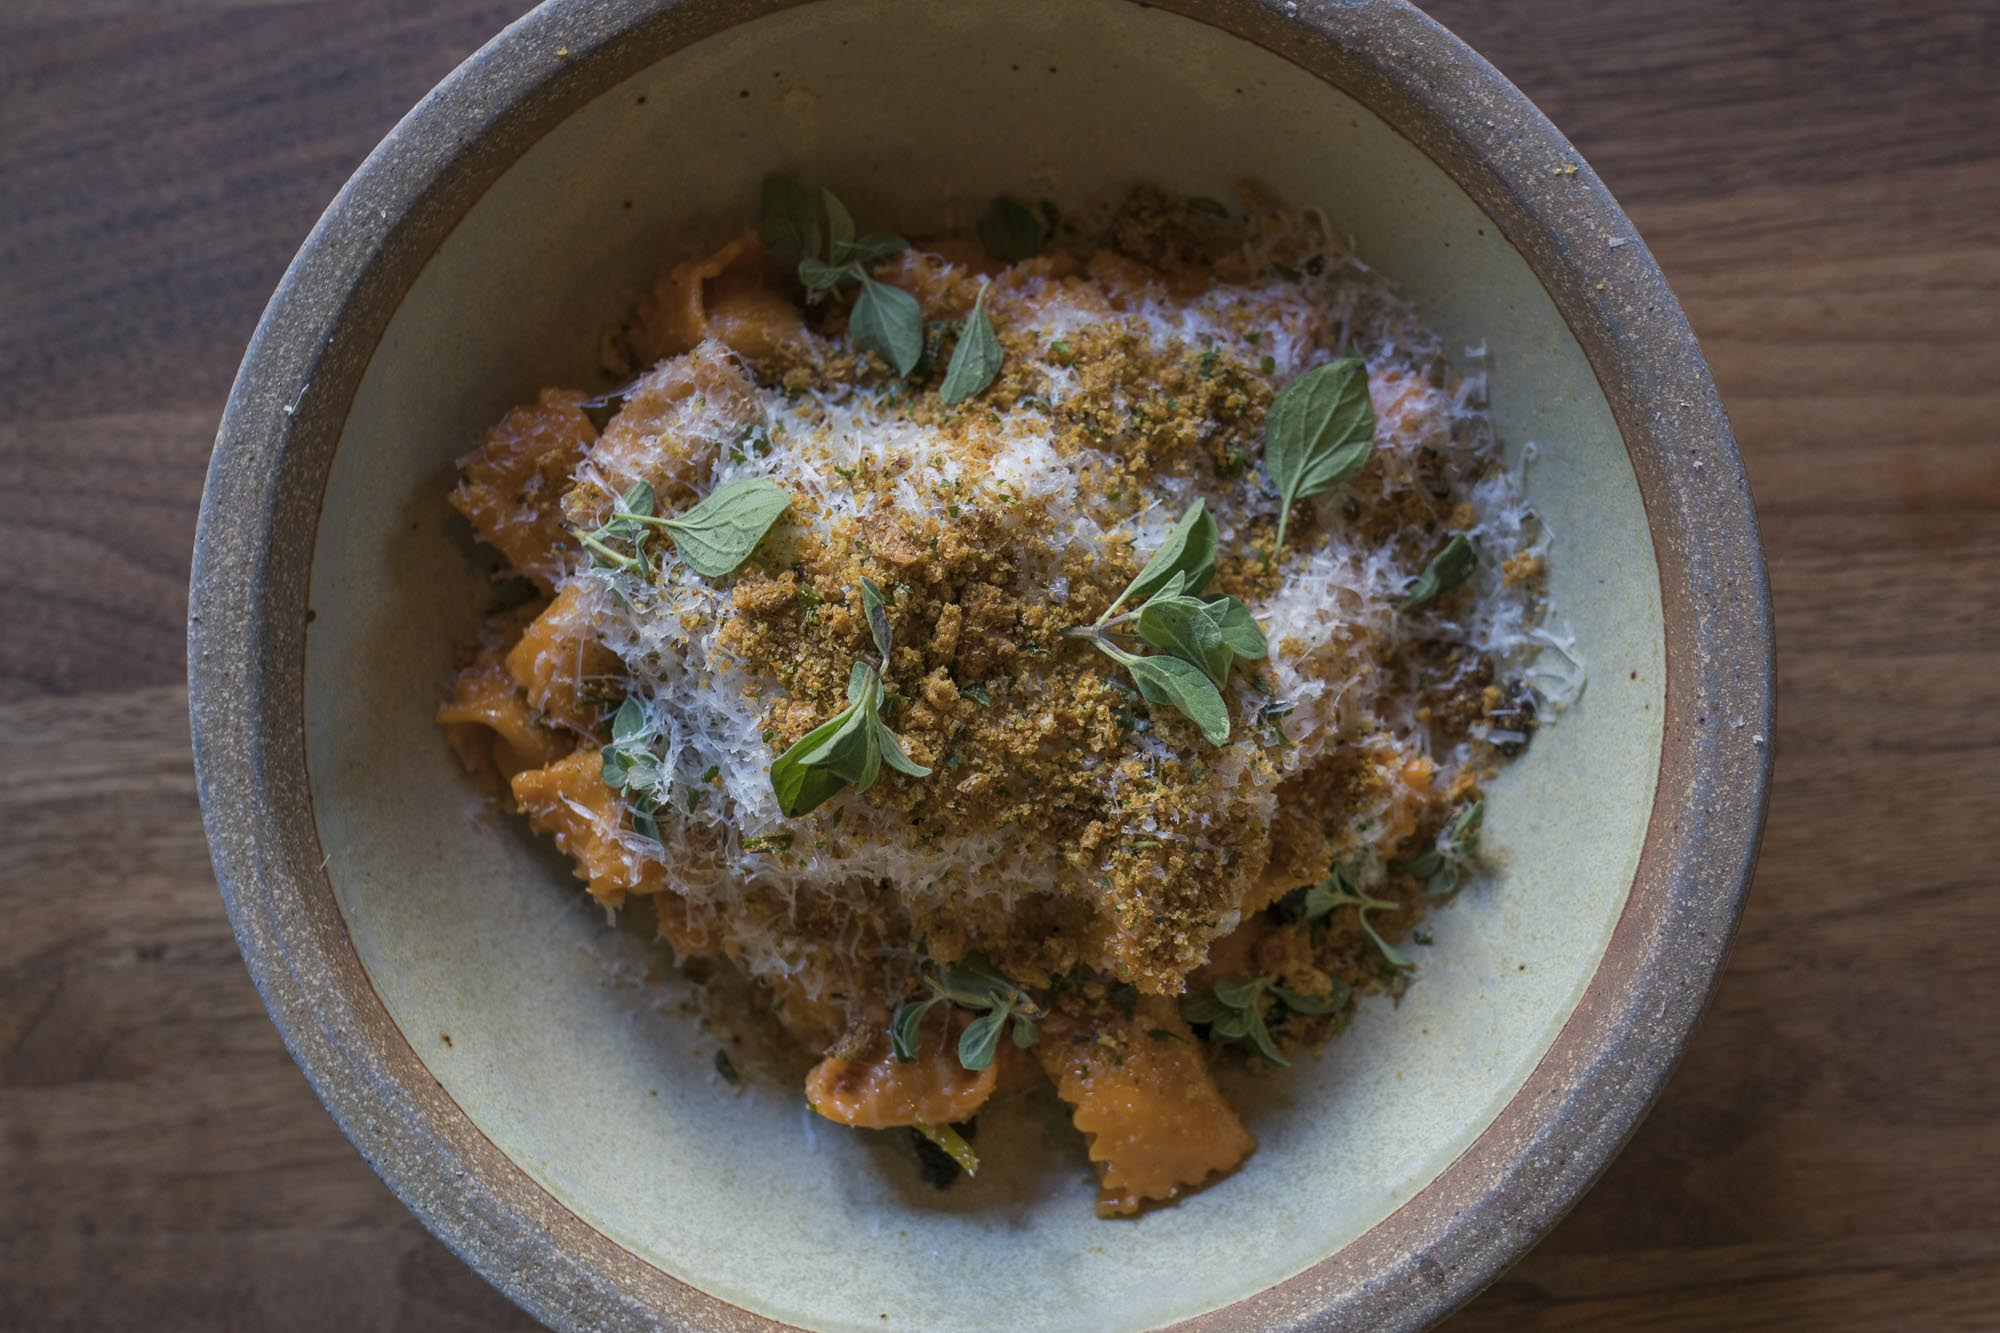 An italian food dish at Flour and Water in San Francisco for Dirt Road Travels